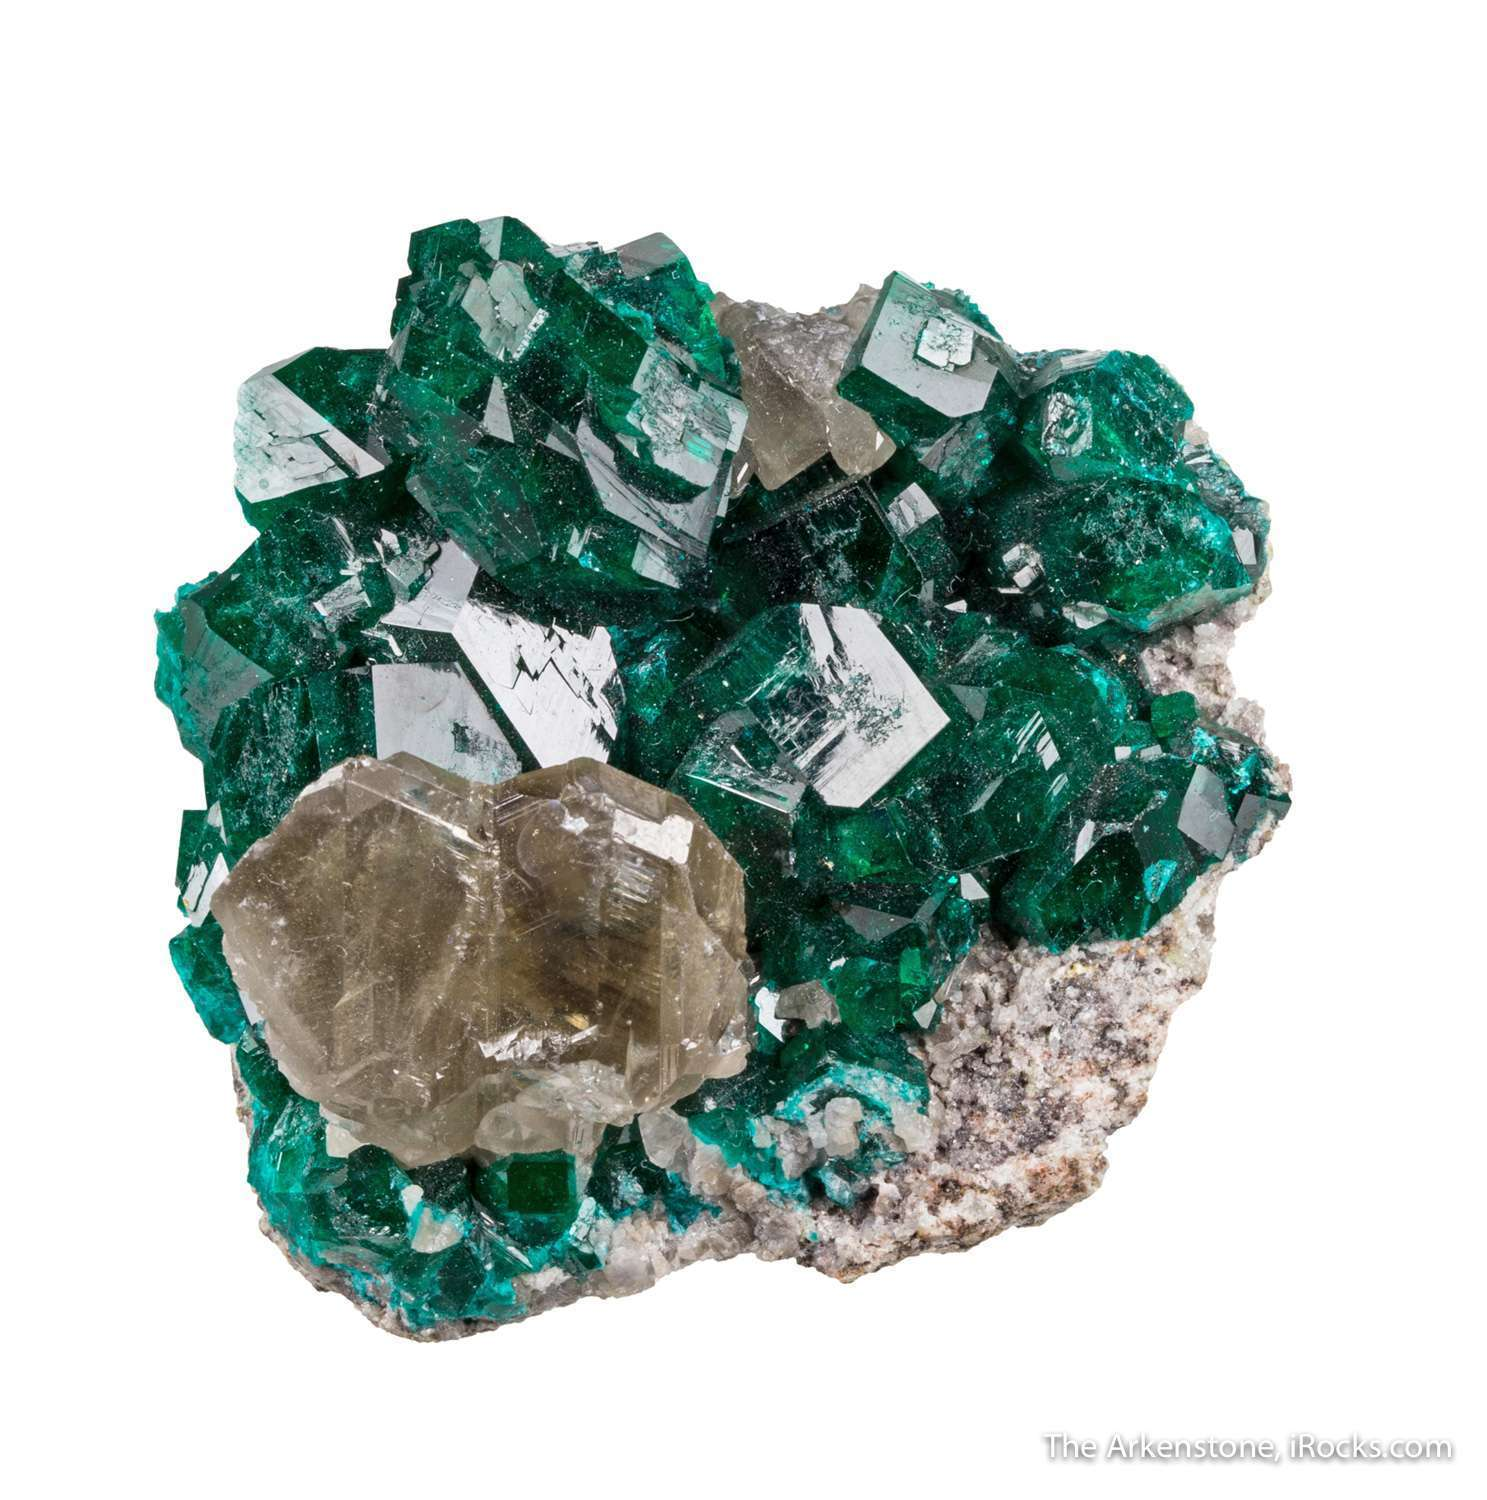 Almost covering trimmed matrix Tsumeb s coveted species dioptase